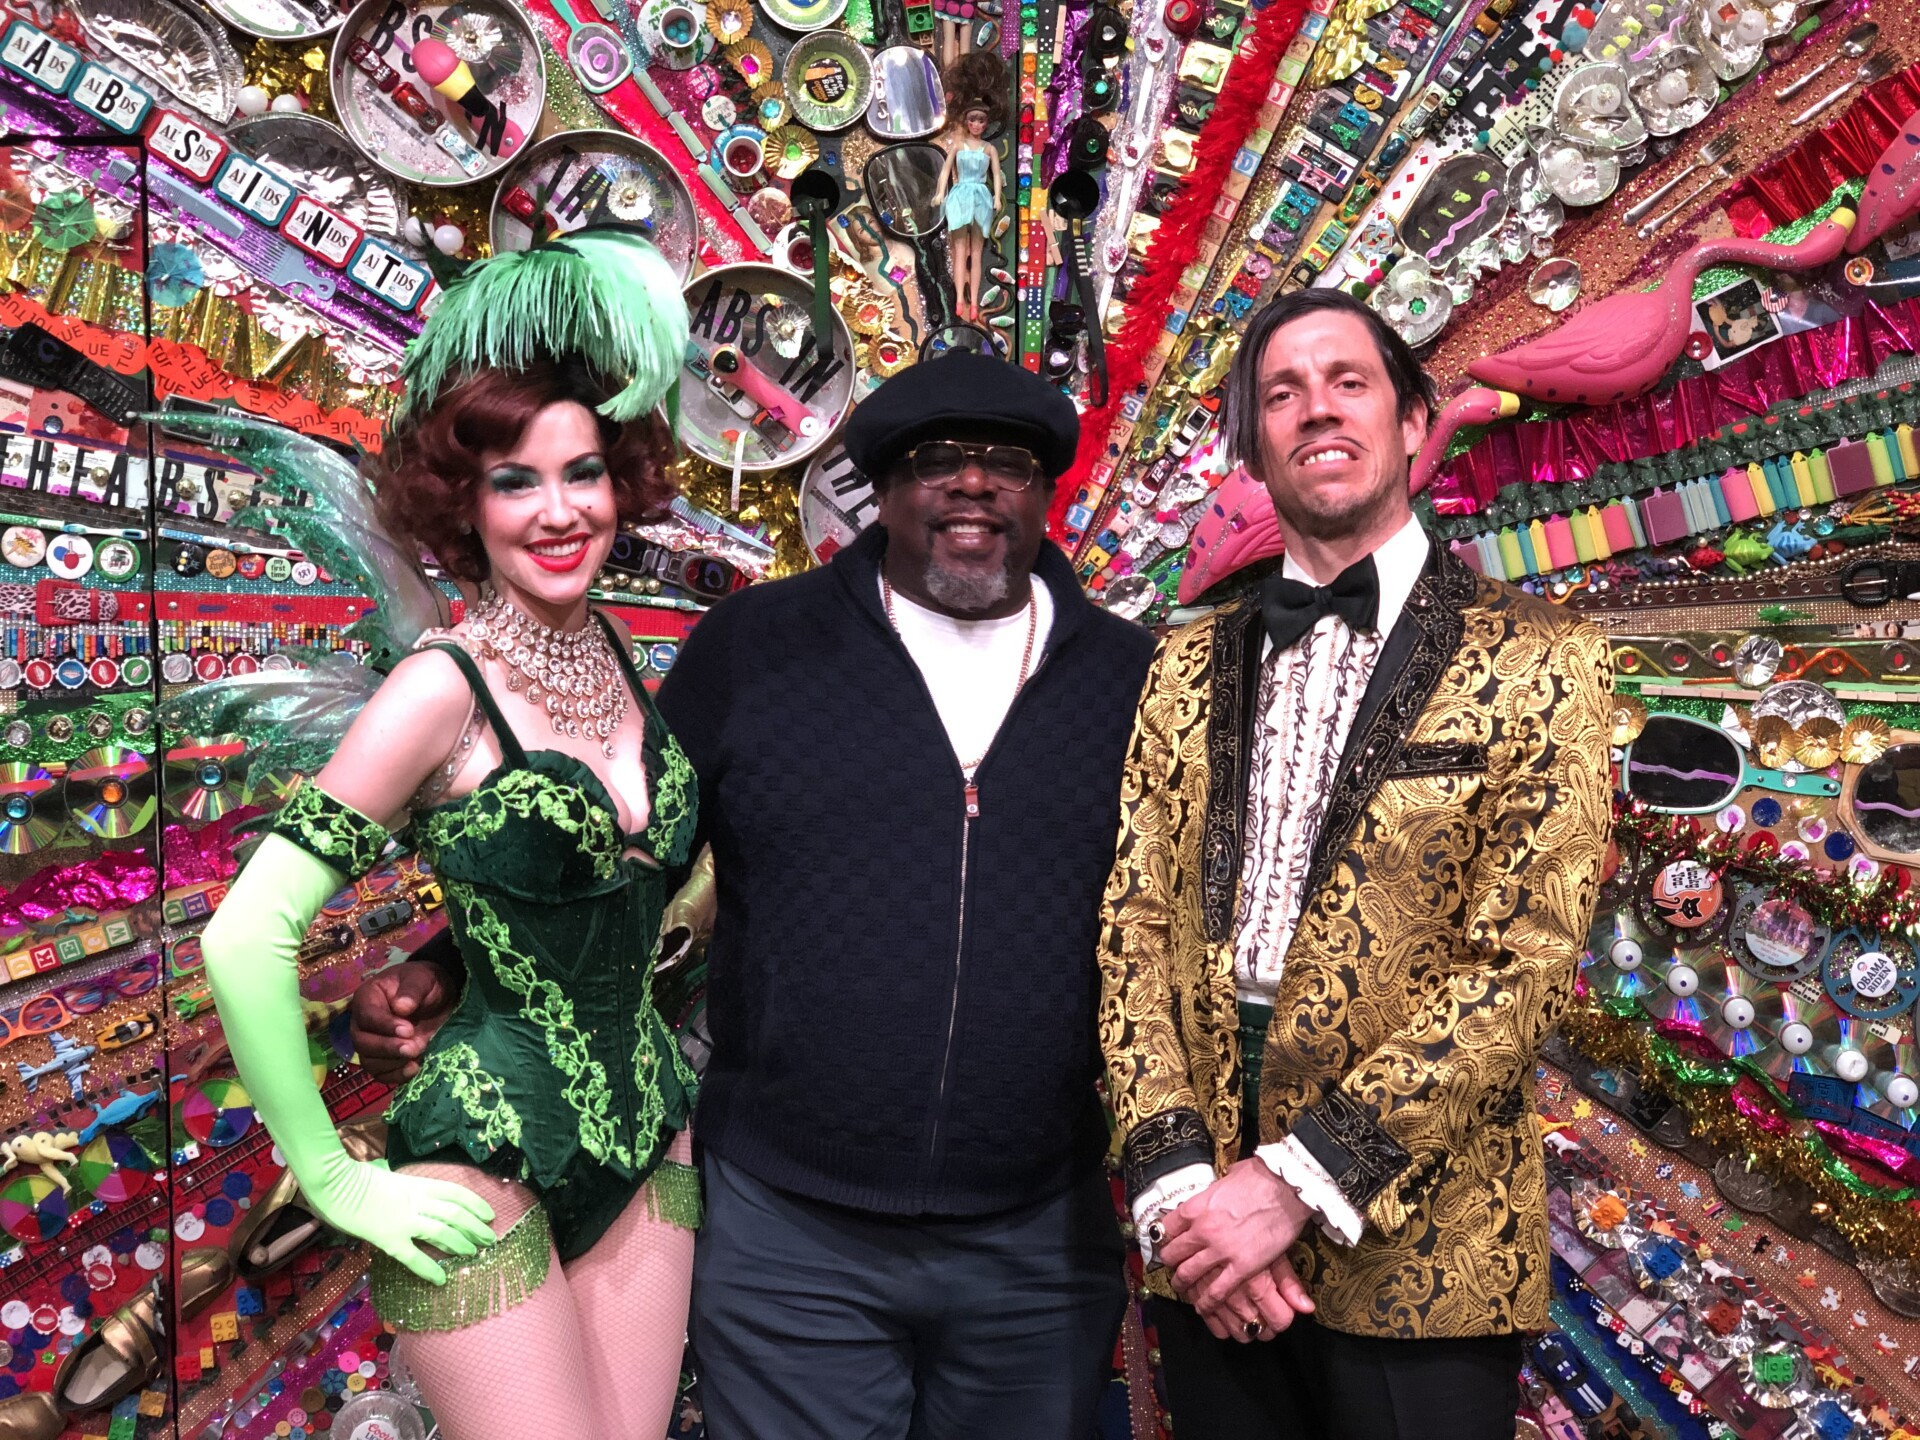 Cedric the Entertainer was spotted attending the hit show ABSINTHE at Caesars Palace in Las Vegas on March 8.